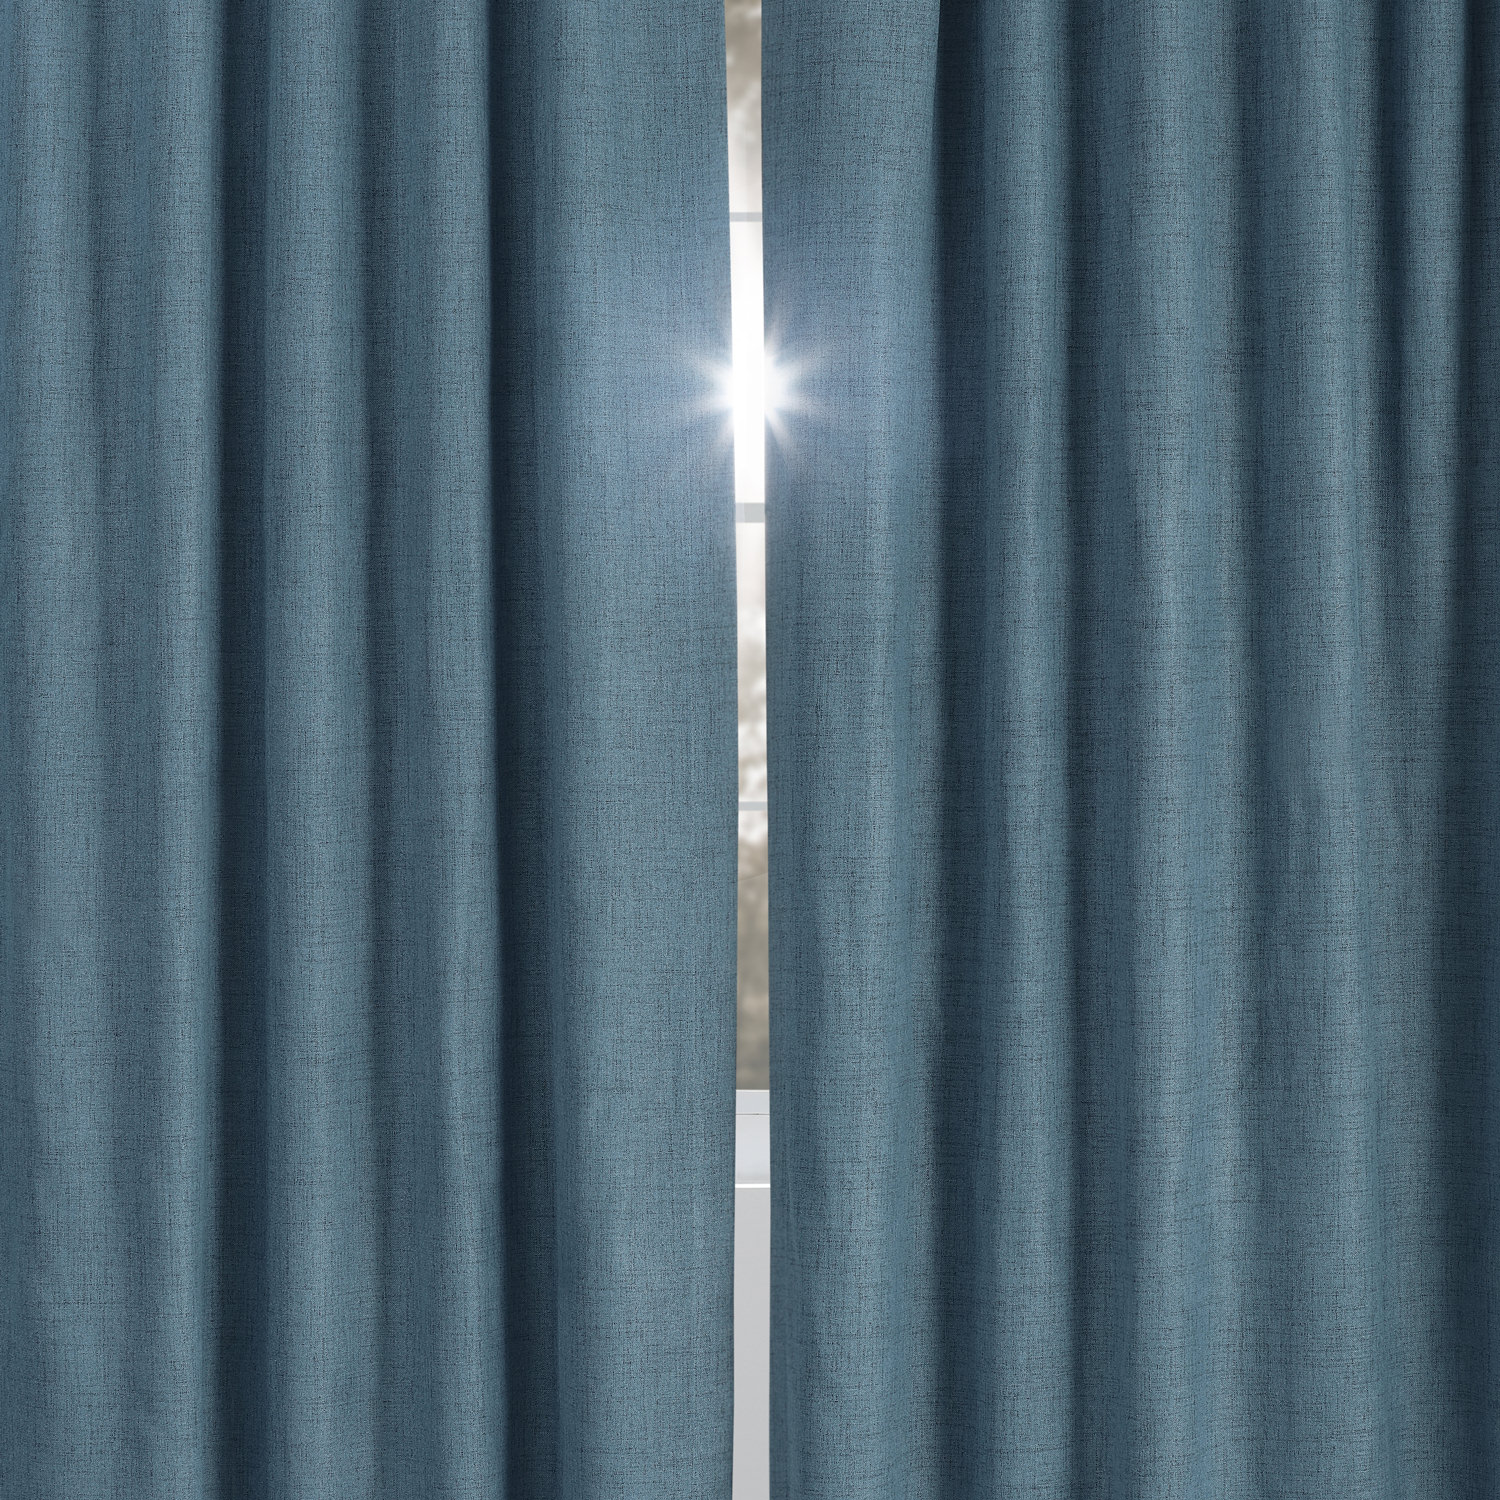 Ovation Blue Vintage Thermal Cross Linen Weave Max Blackout Grommet Curtain